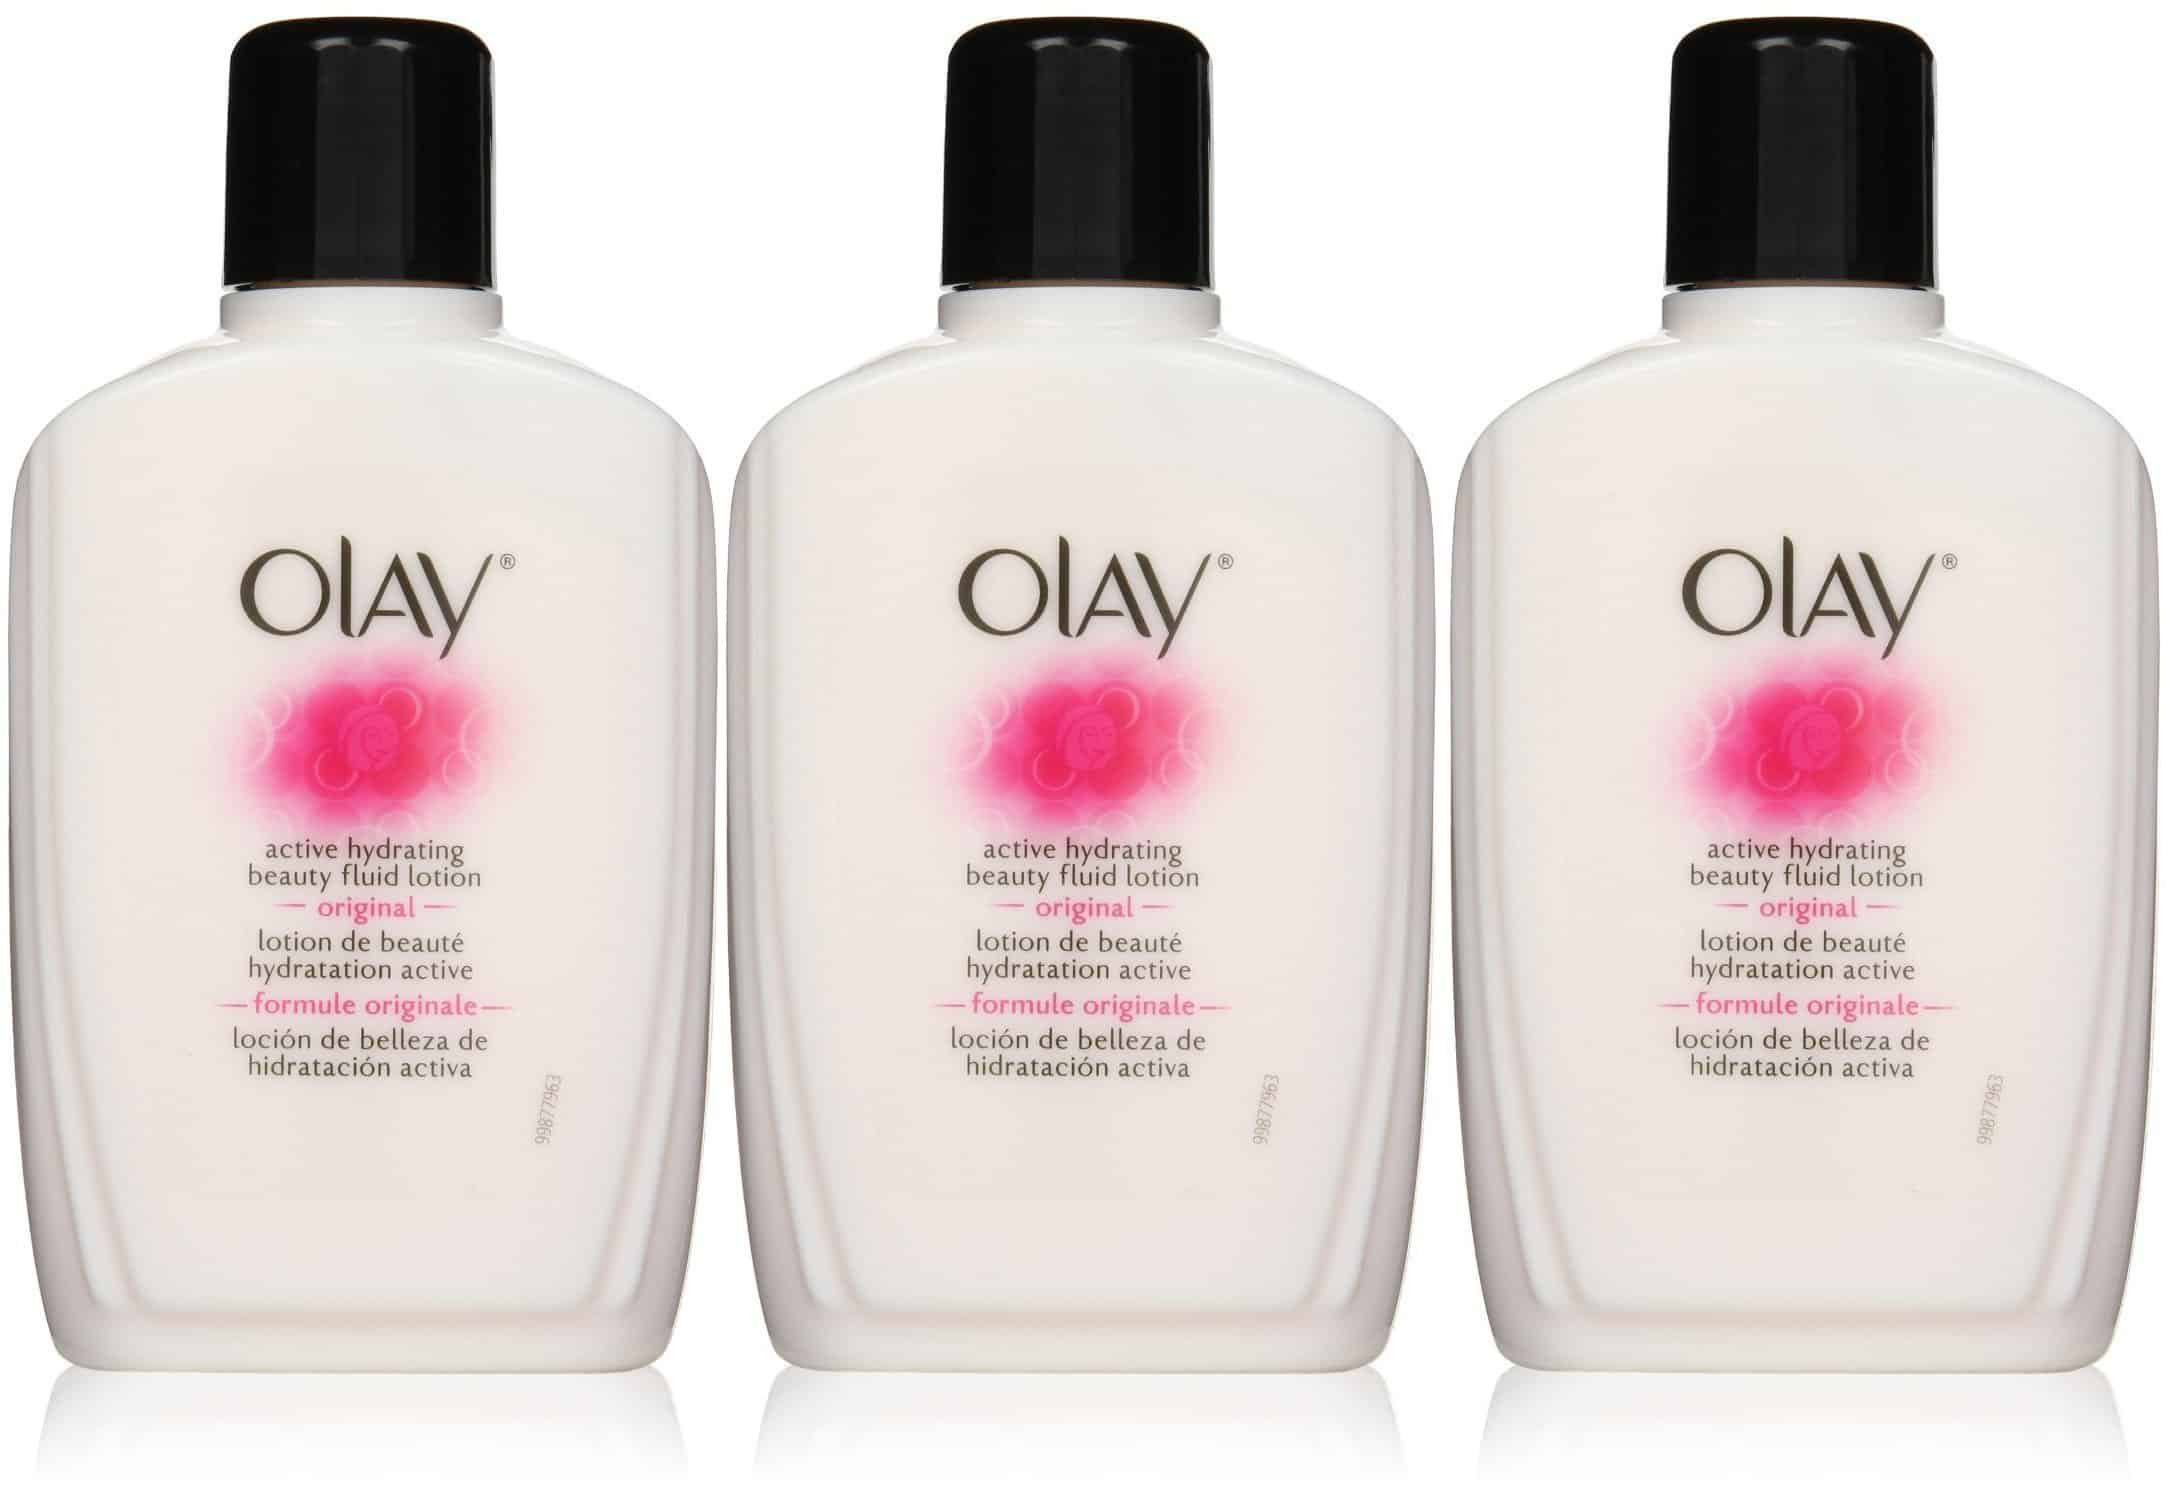 Olay-Active-Hydrating-Beauty-Fluid-Lotion-Original